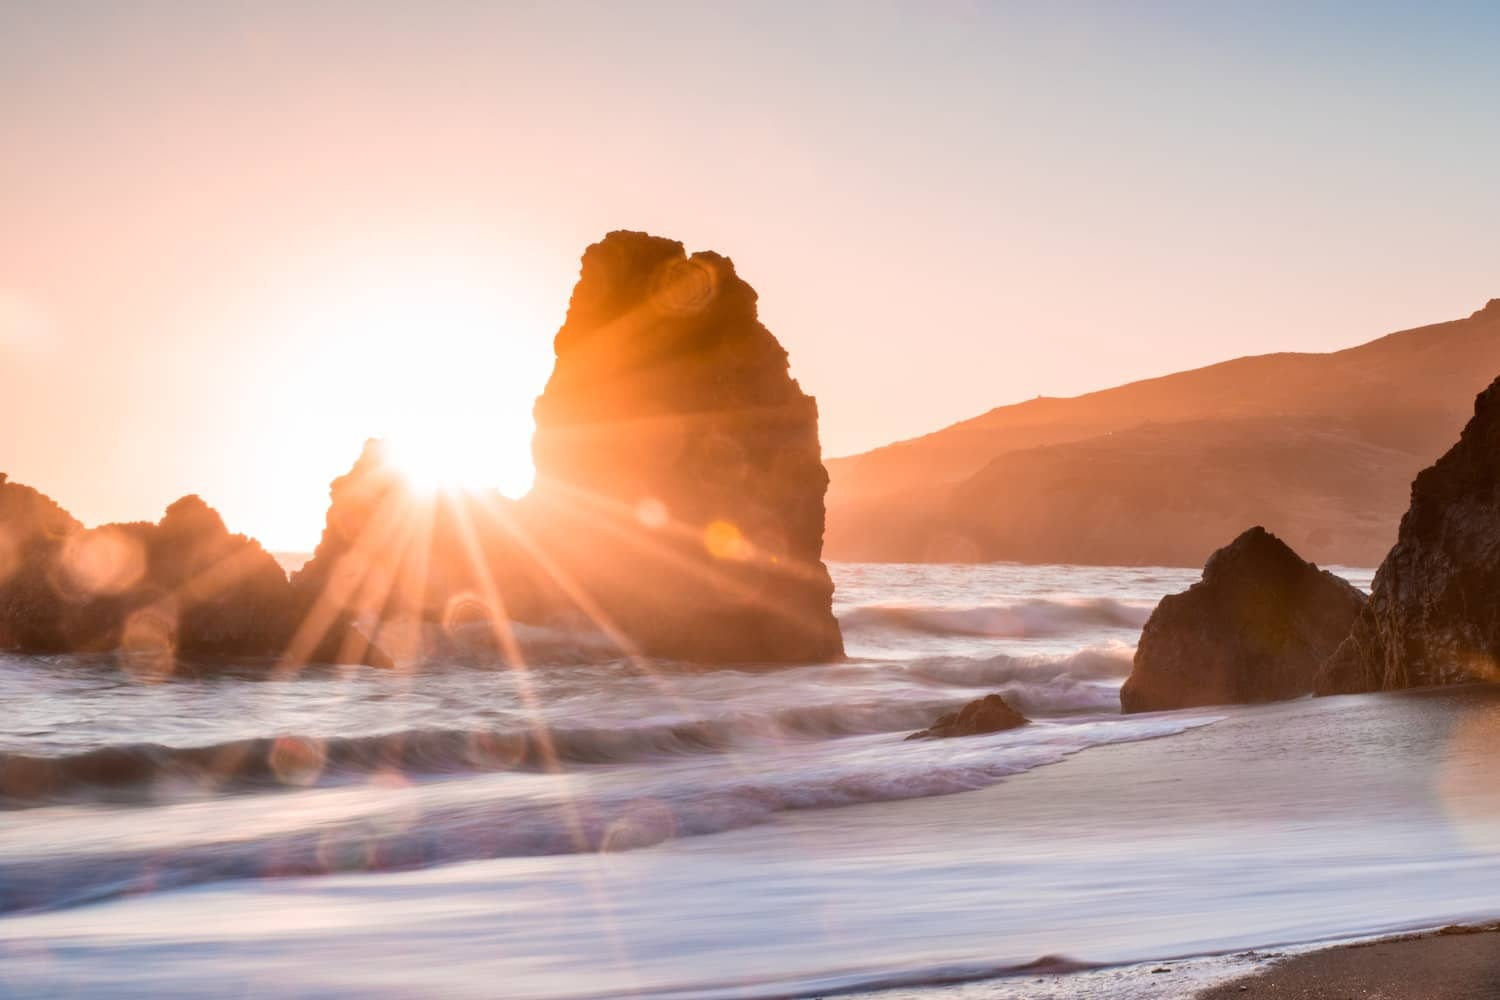 Sun stars make for magical subjects in your beach photography, try to capture them with these tips.